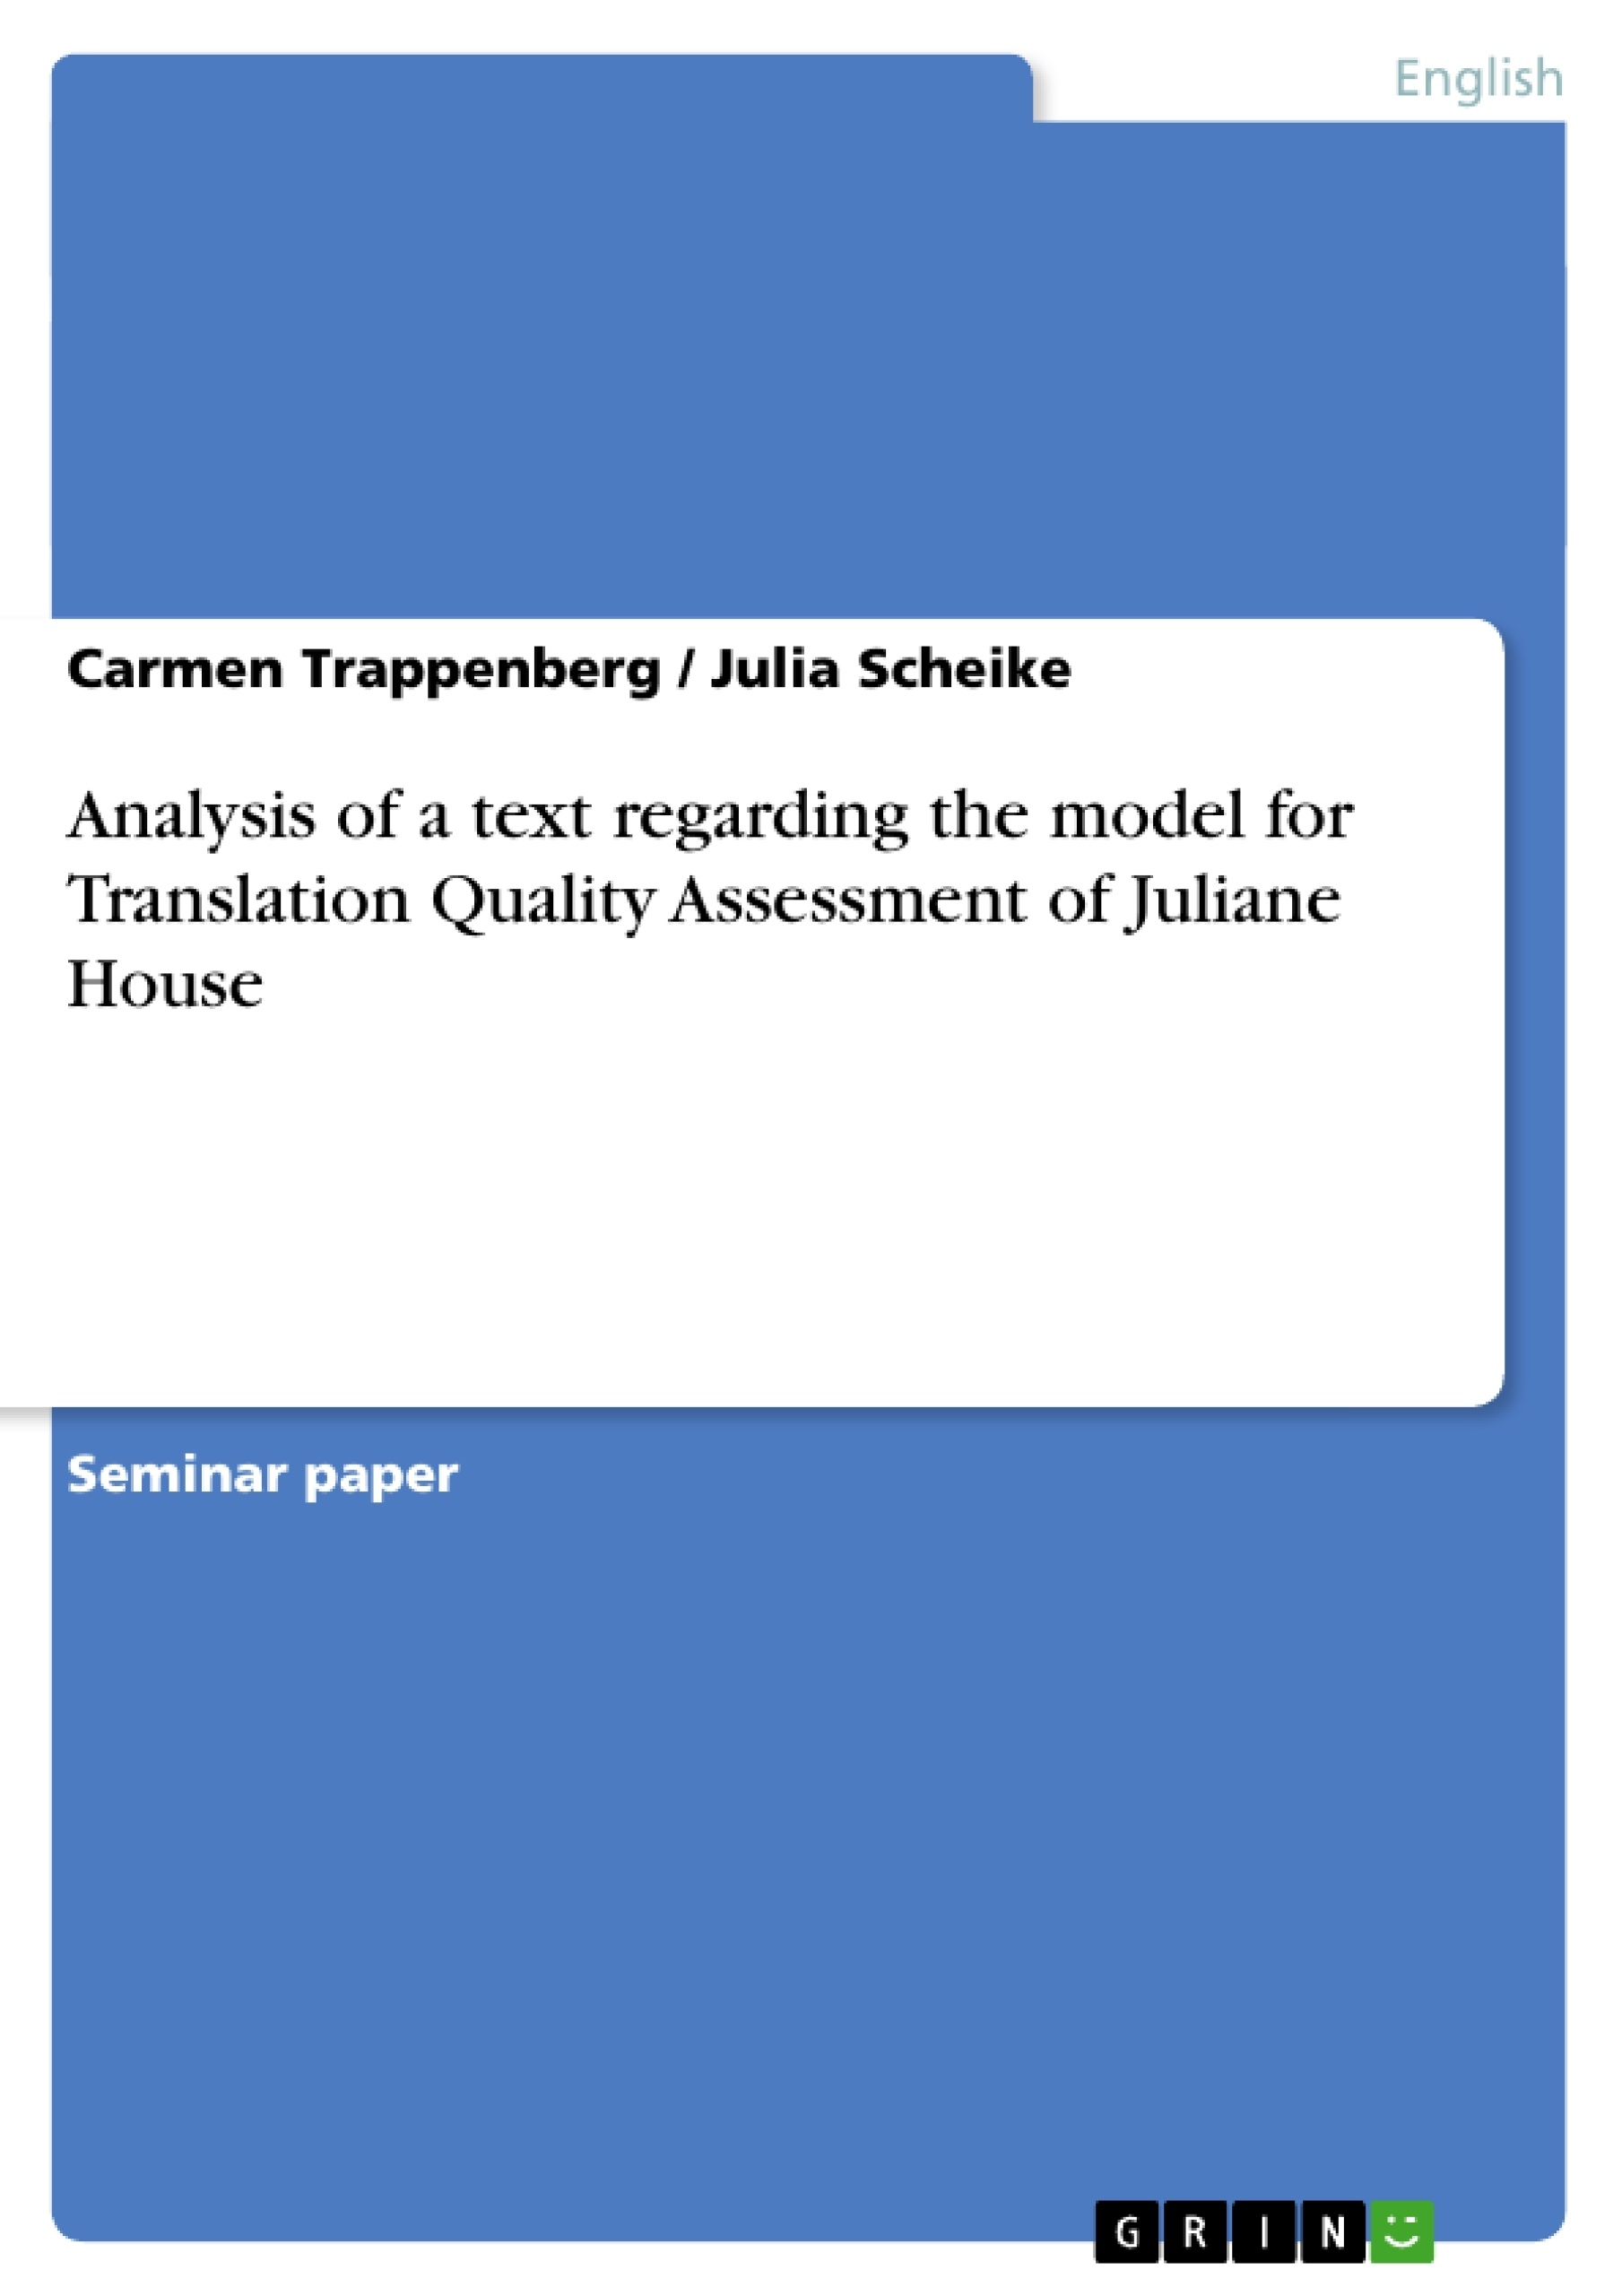 analysis of a text regarding the model for translation quality